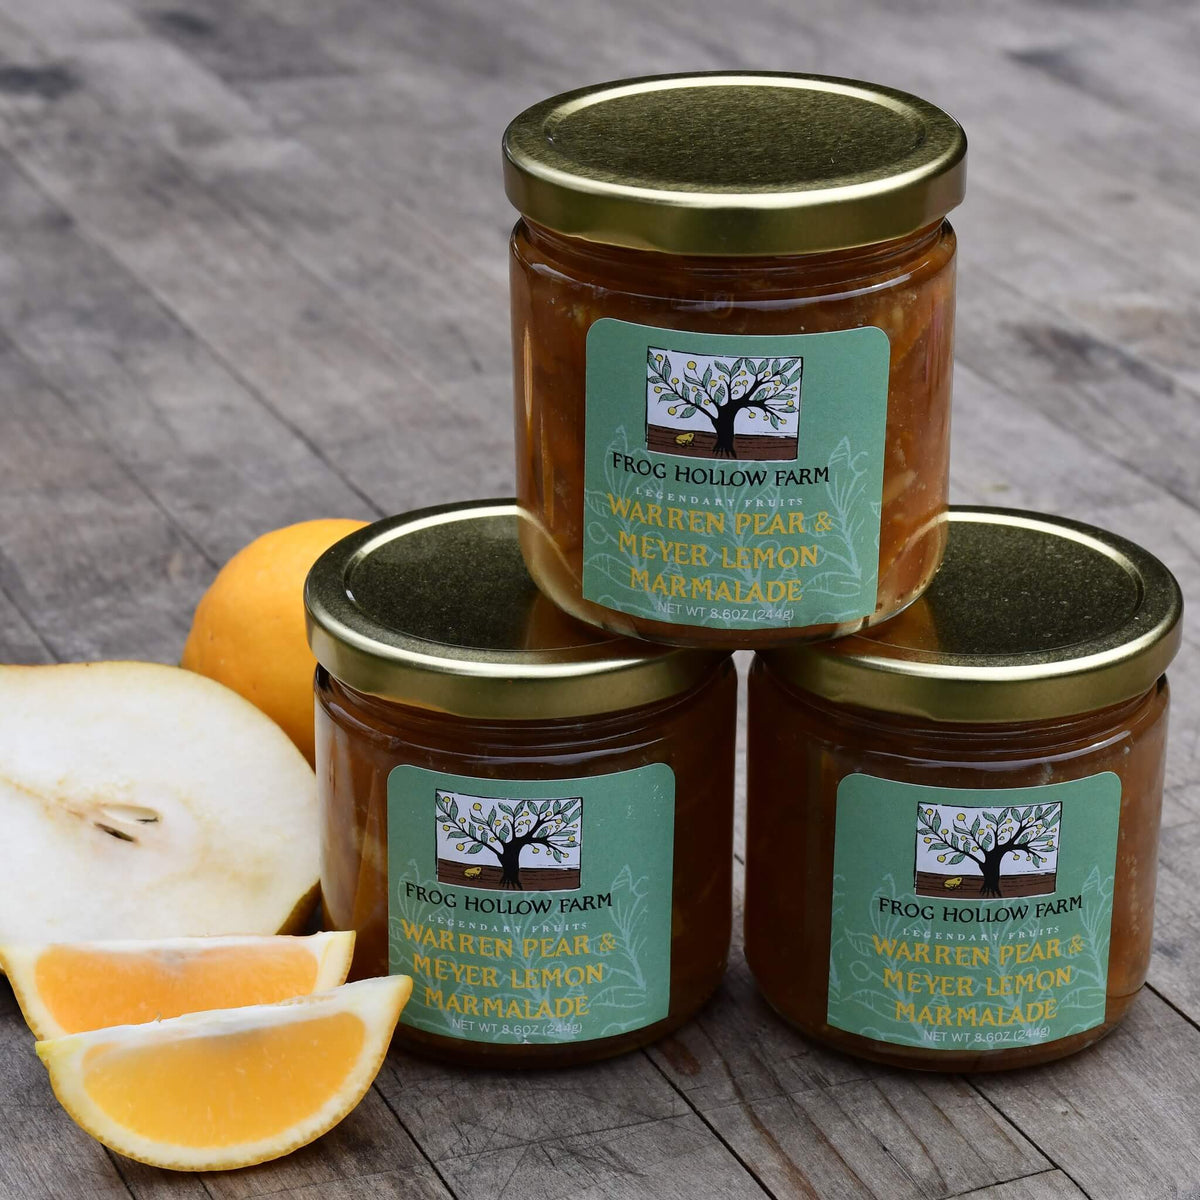 Warren Pear & Meyer Lemon Marmalade